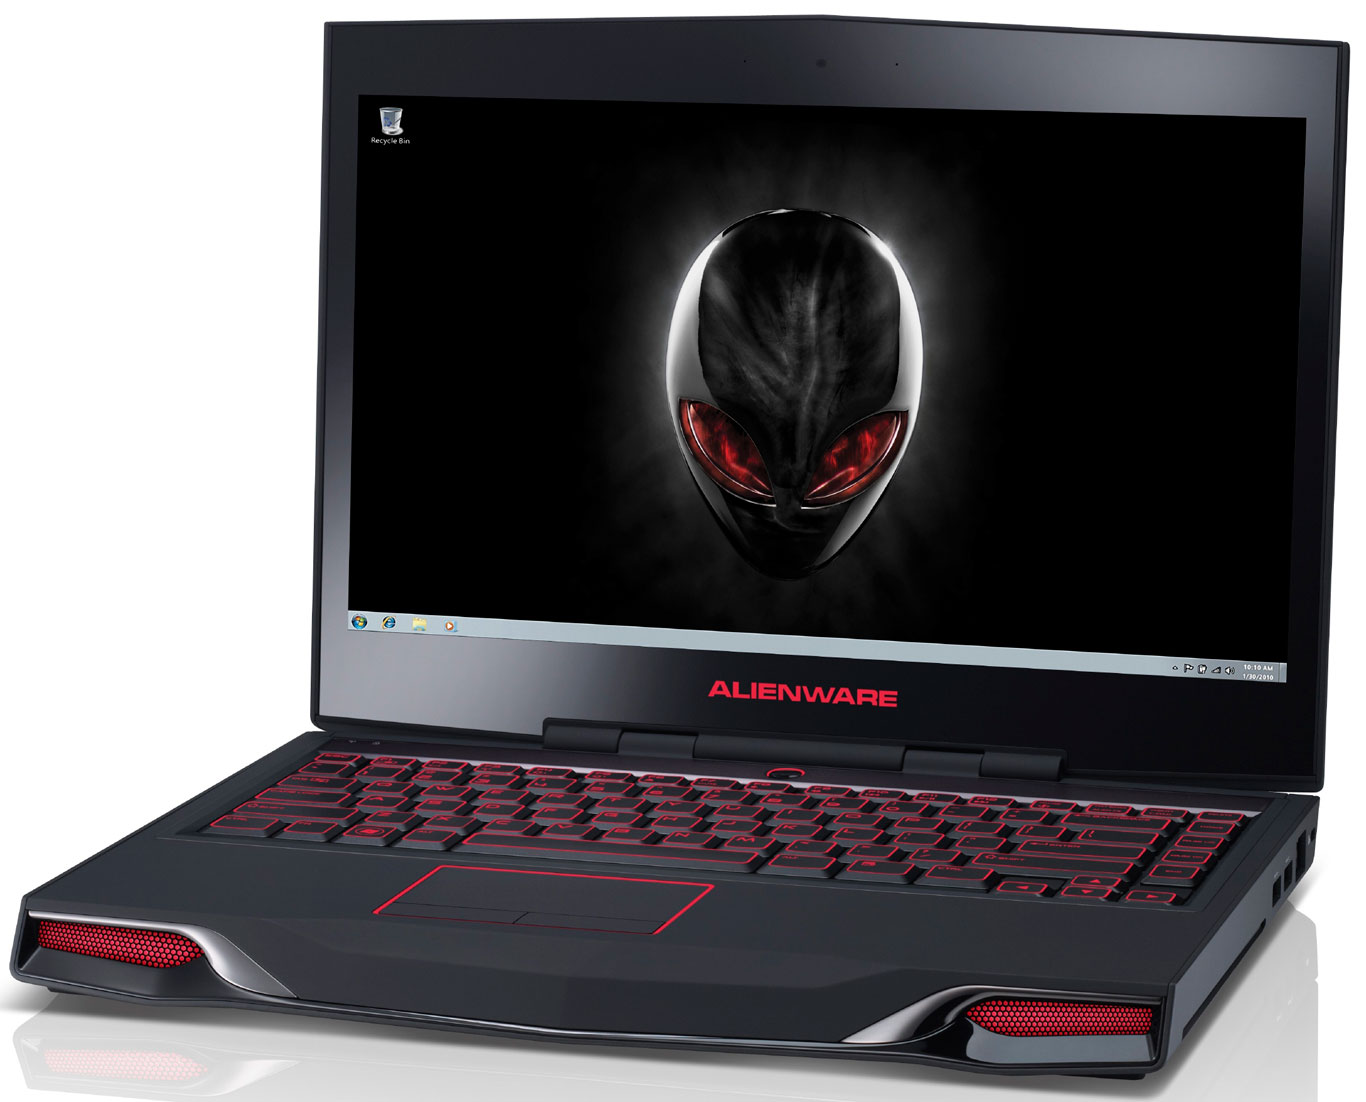 Dell Alienware M14x R2 black.jpg